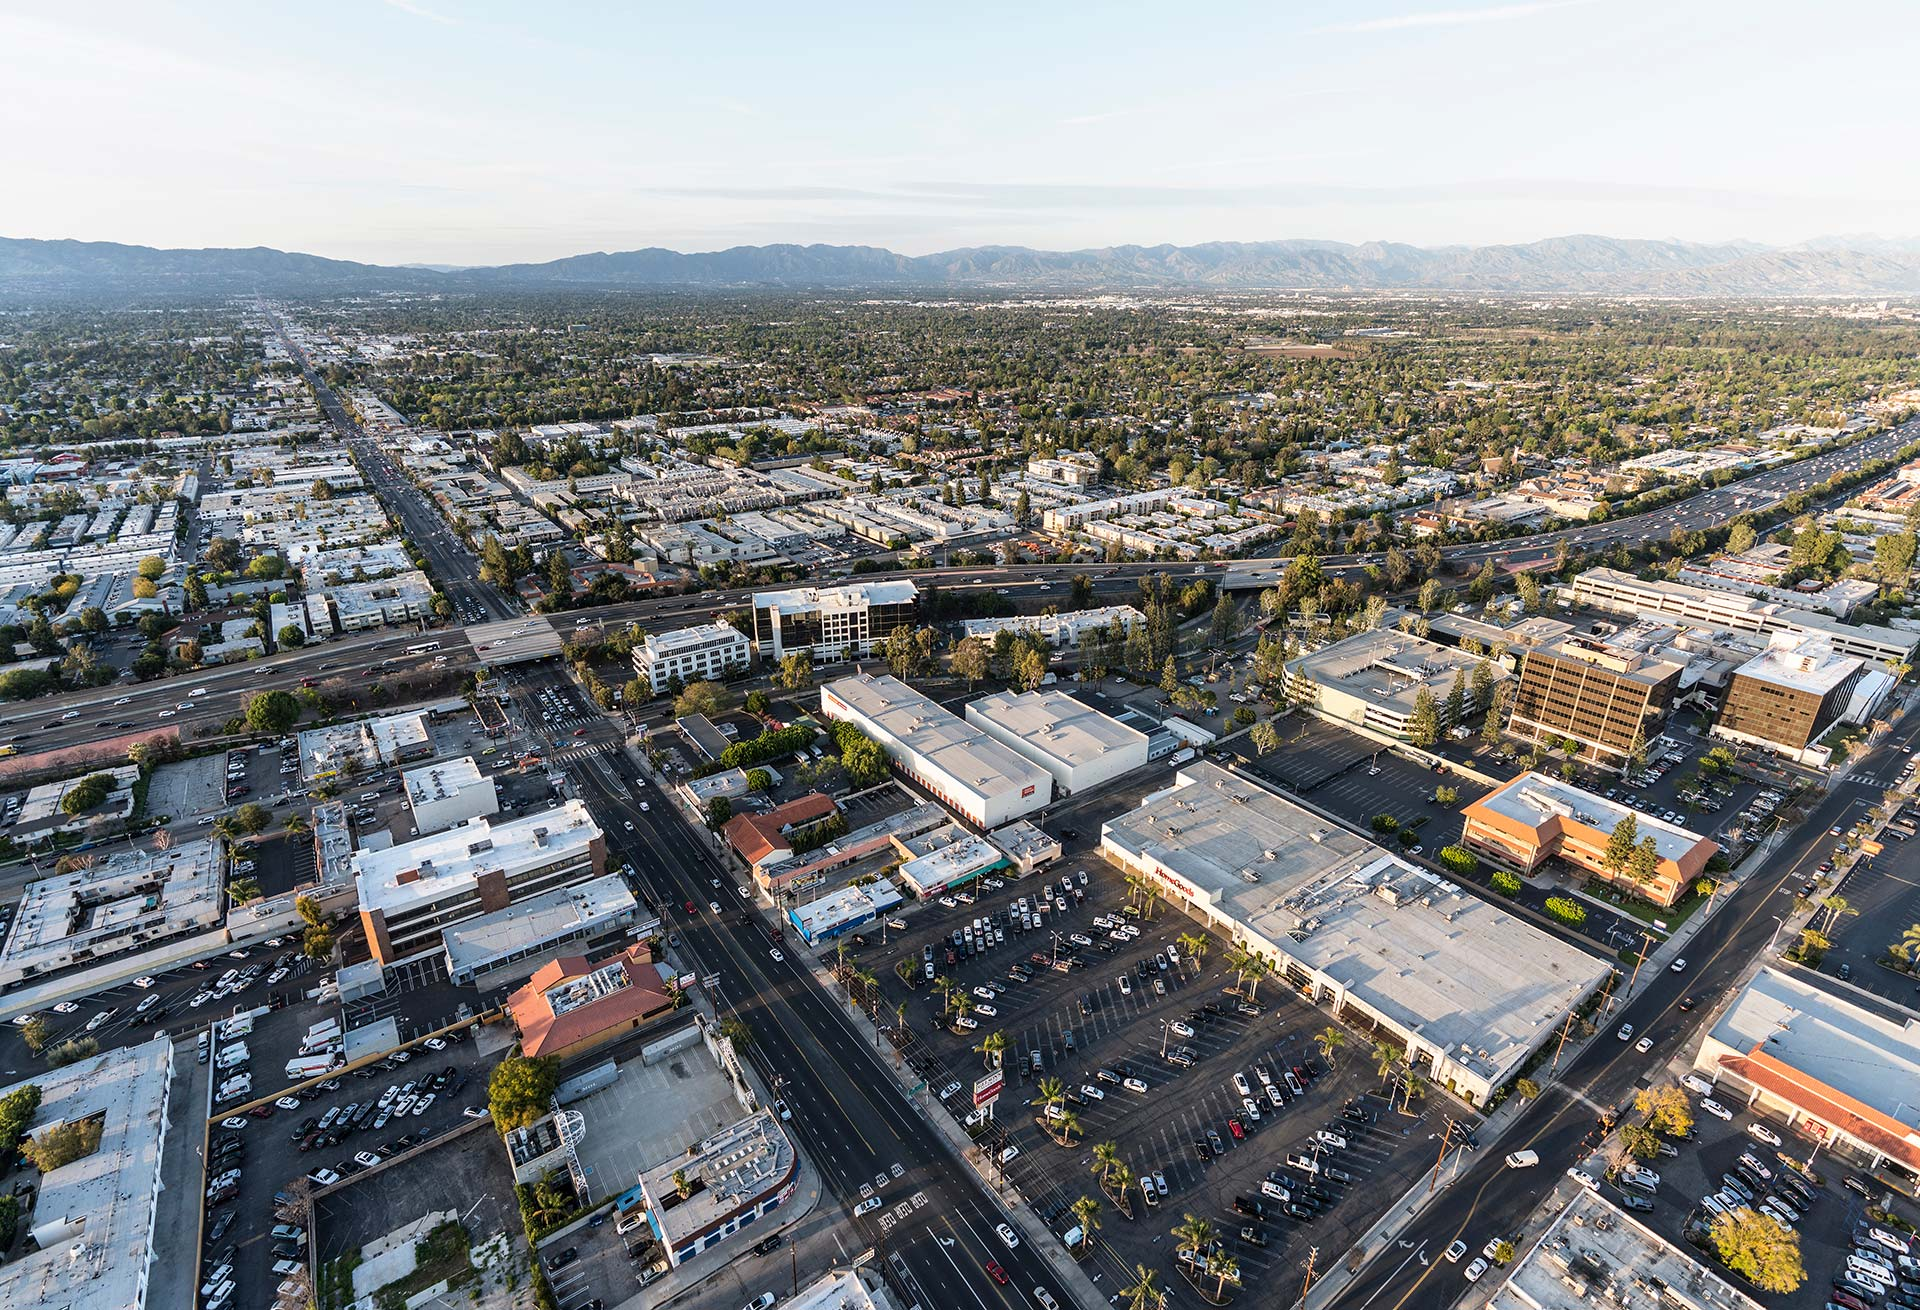 paley-commercial-real-estate-san-fernando-valley-1920x1310